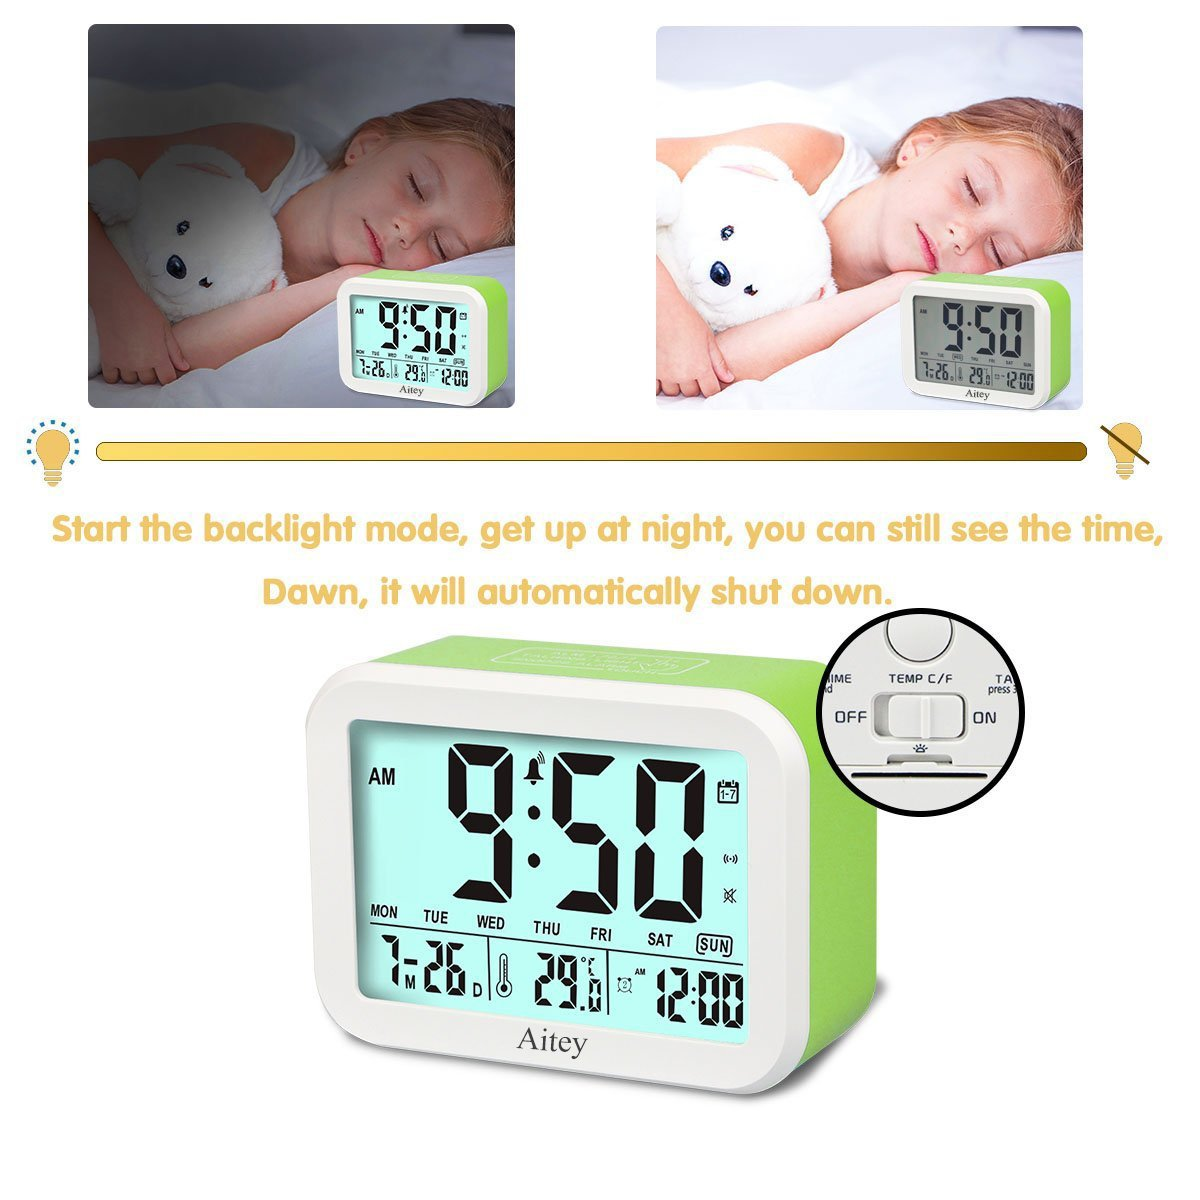 Digital Alarm Clock, Aitey Talking Clock with 3 alarms, Optional Weekday Alarm, Intelligent Noctilucent & Snooze Function, Month Date & Temperature Display for Adults, Kids & Teens (Green) by Aitey (Image #5)